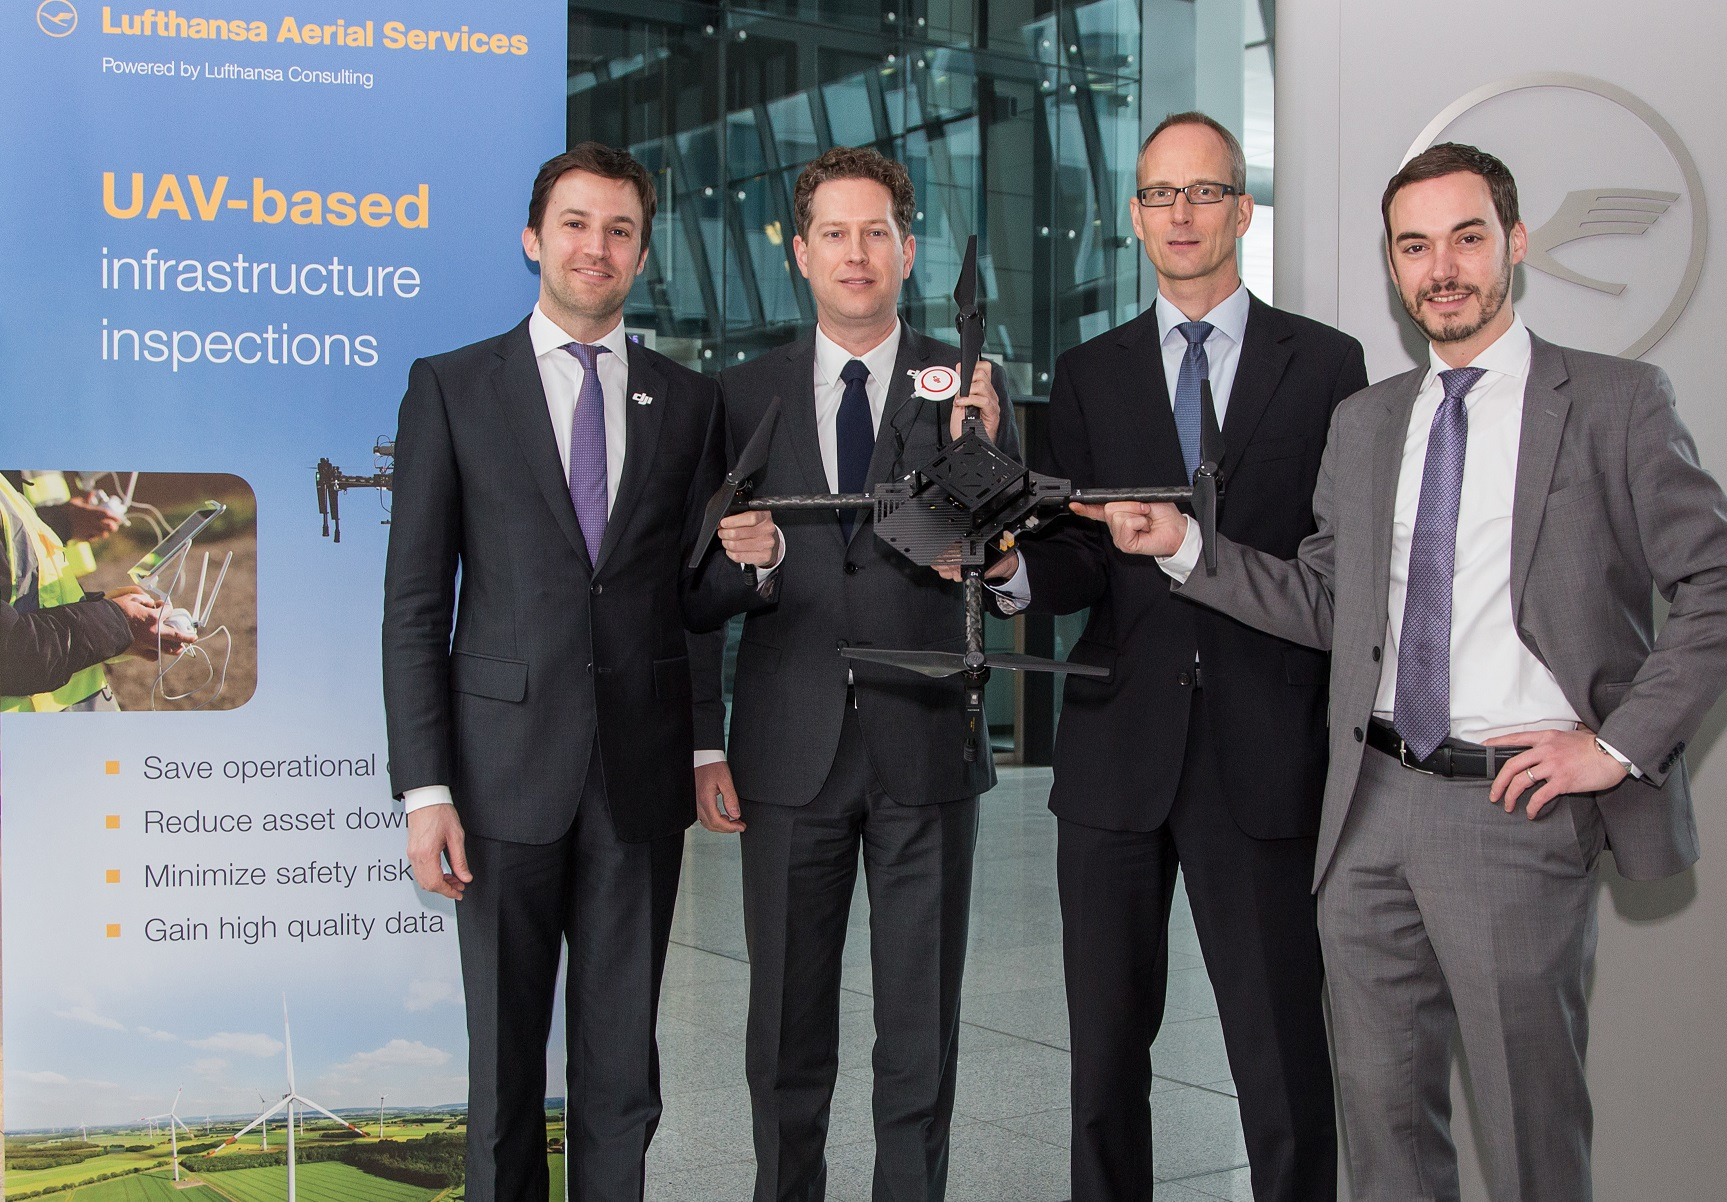 160119_DJI_LH_007 Lufthansa Joins Forces with DJI to Develop a 'One-Stop UAV Shop'